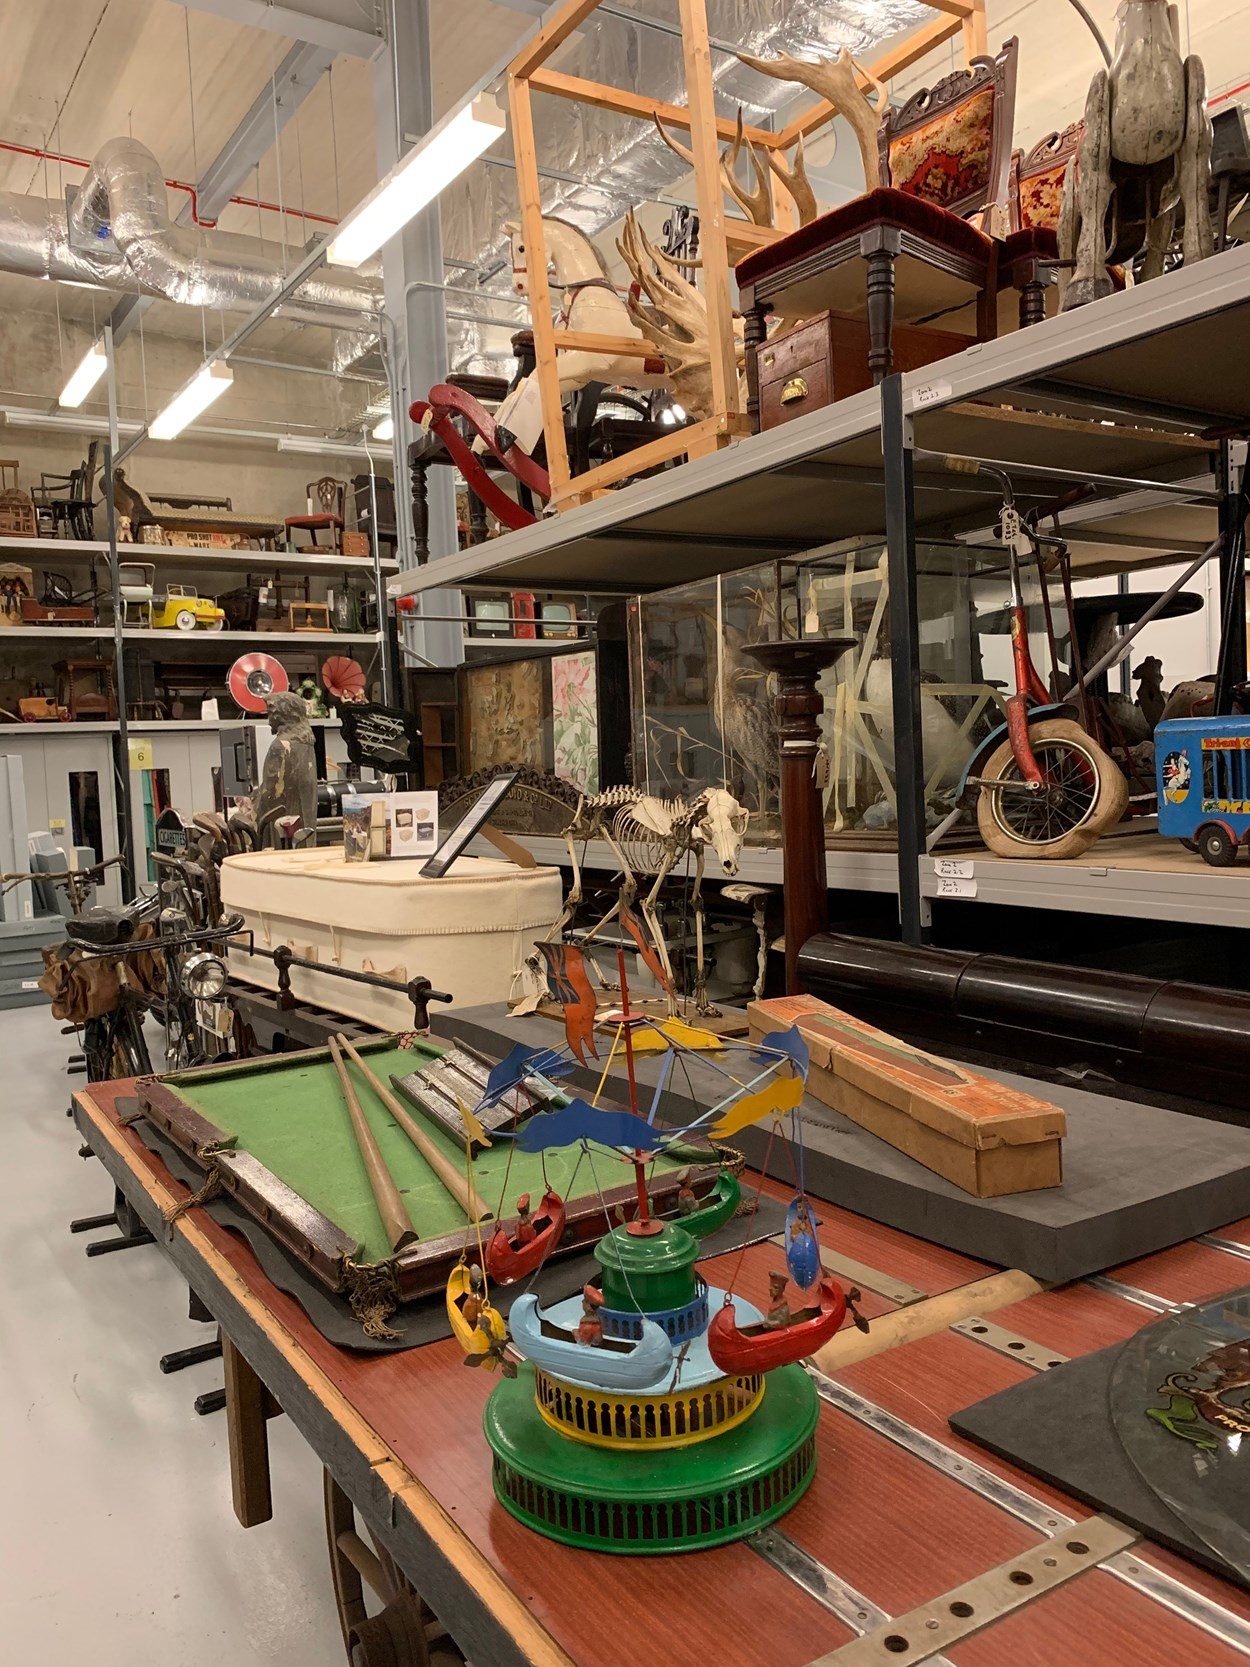 Leeds Discovery Centre: The Leeds Discovery Centre, where many of the objects in the Leeds Museums and Galleries collection, which feature on the MyLearning site, are stored.